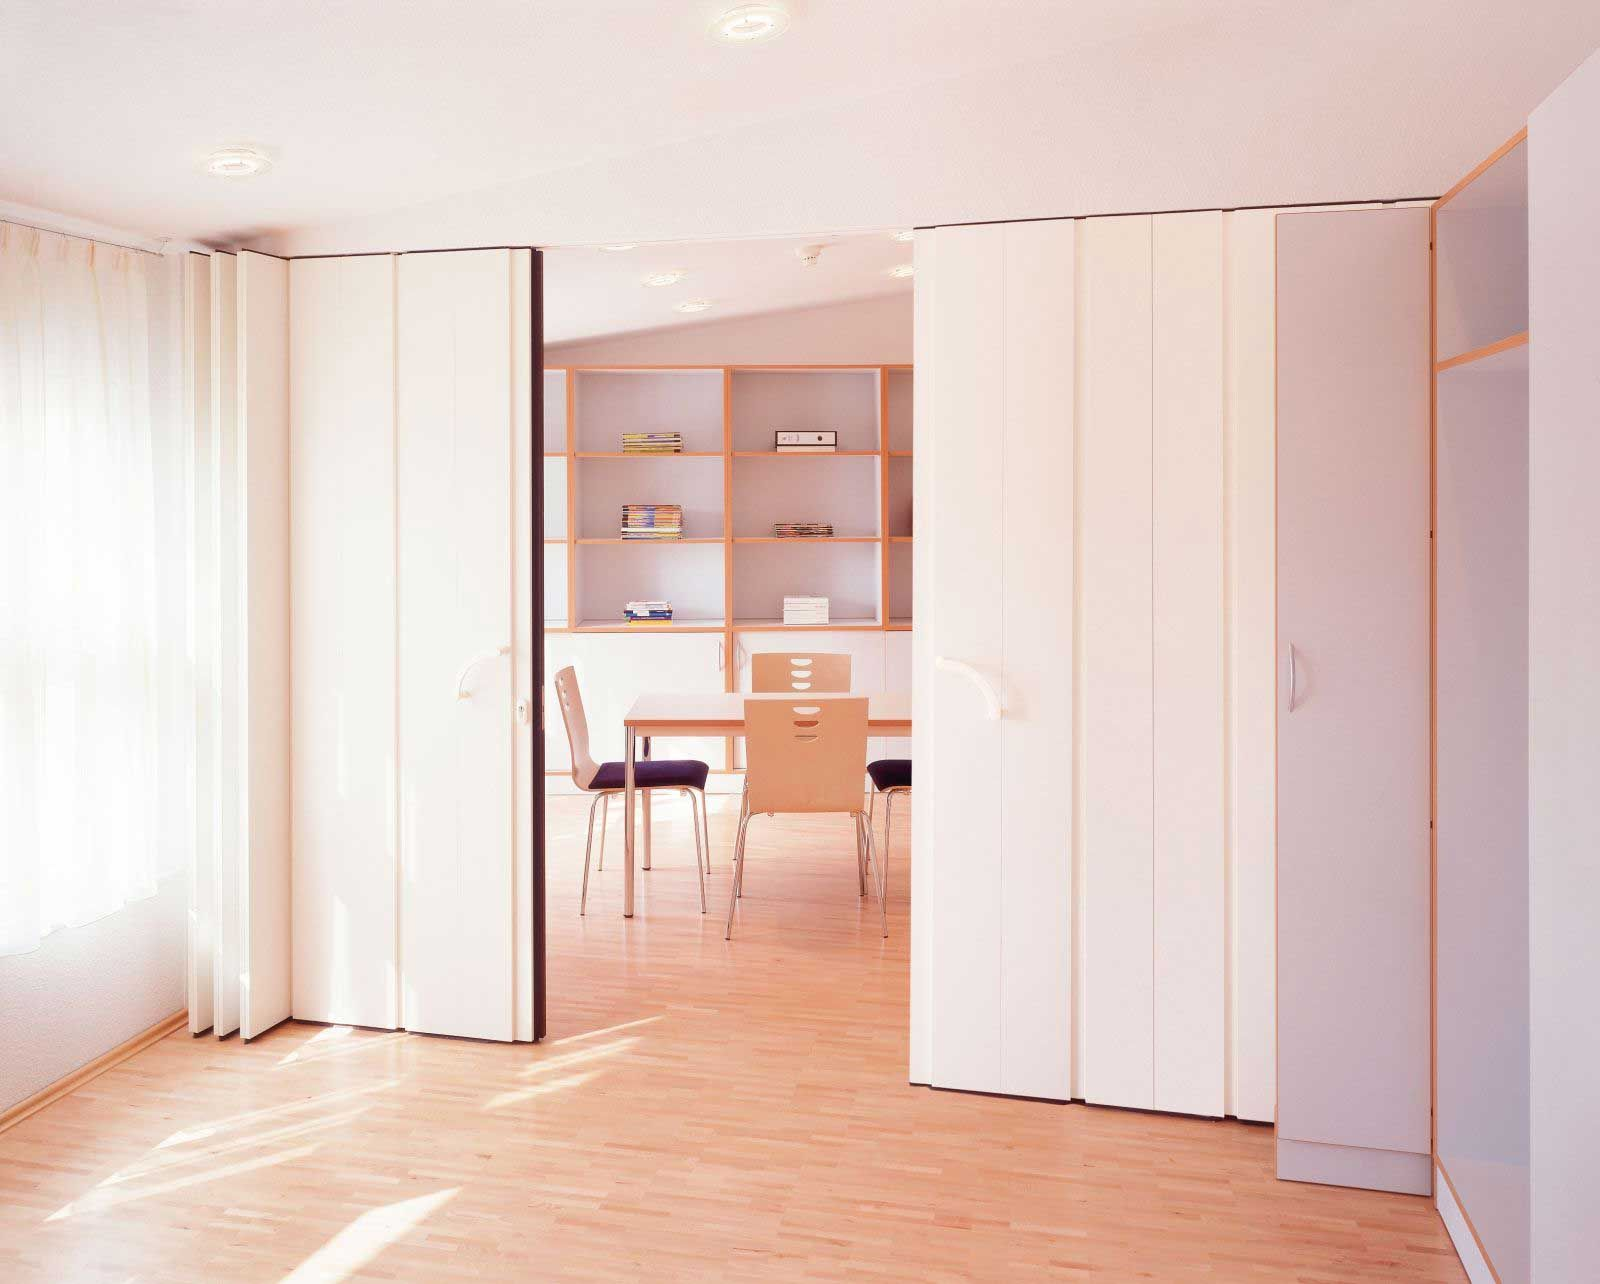 Sliding Wall Dividers Best 25 Movable Partition Ideas On Pinterest Movable Walls